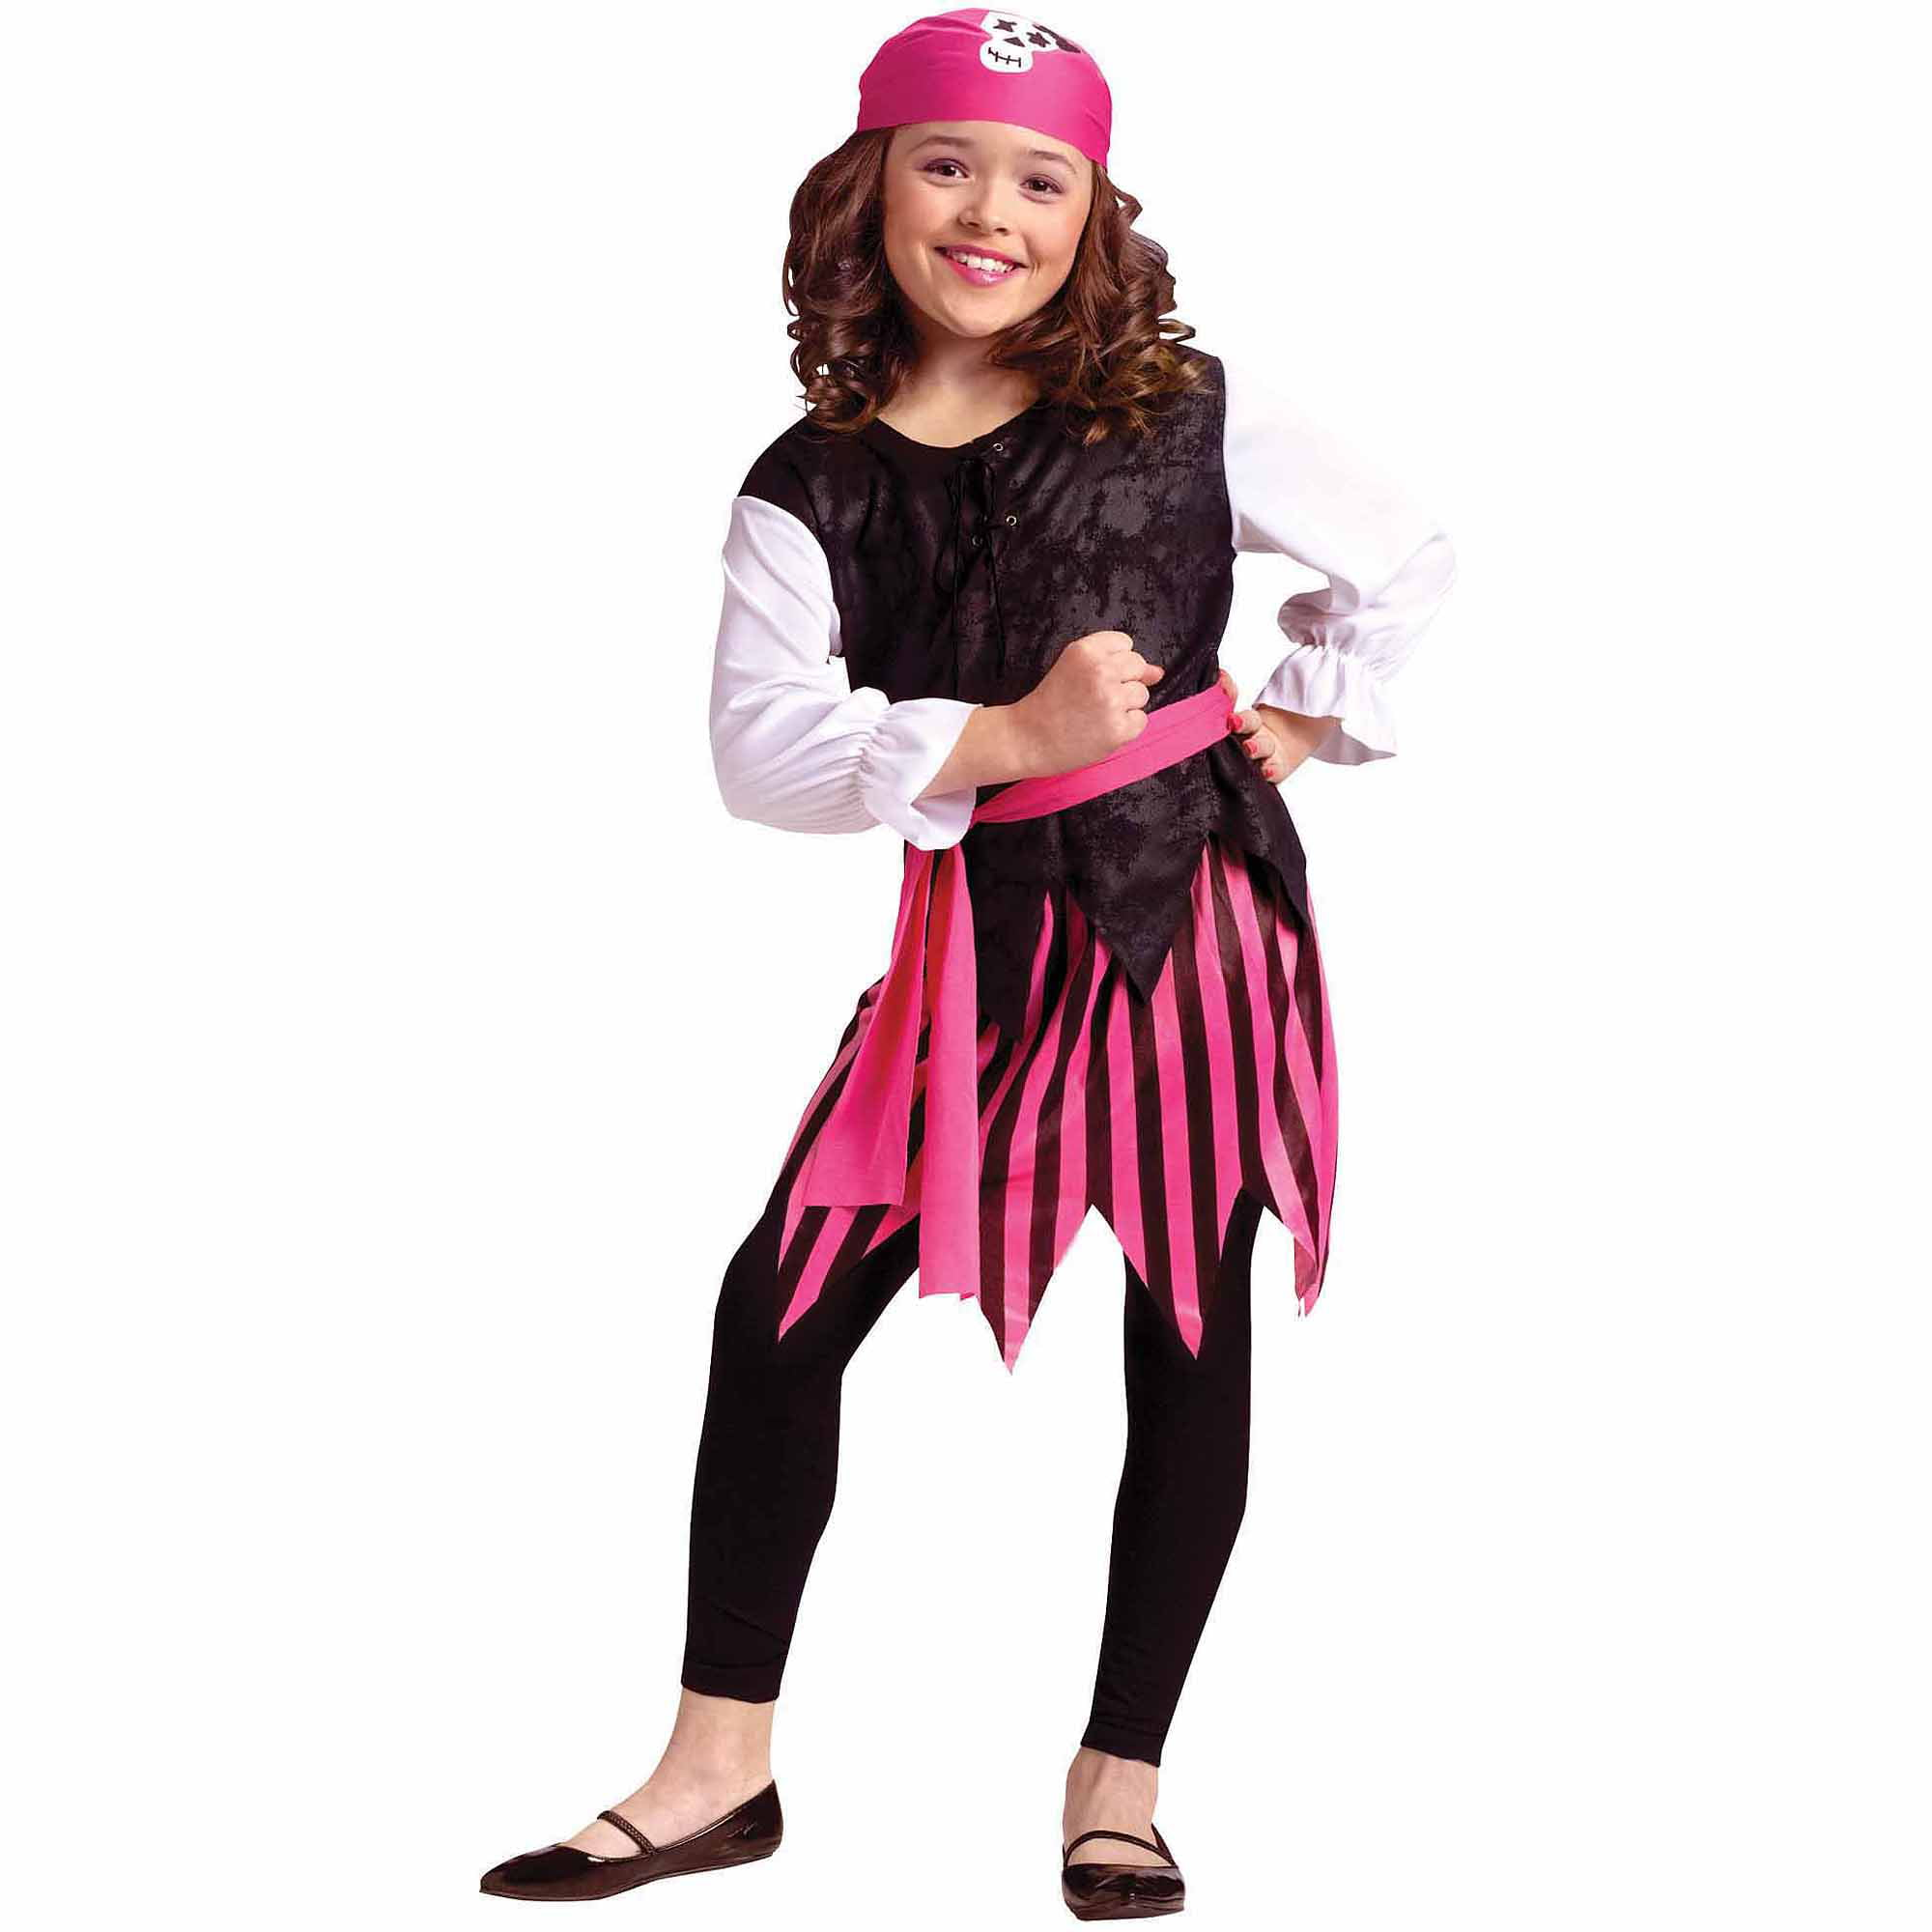 sc 1 st  Walmart & Caribbean Pirate Child Halloween Costume - Walmart.com